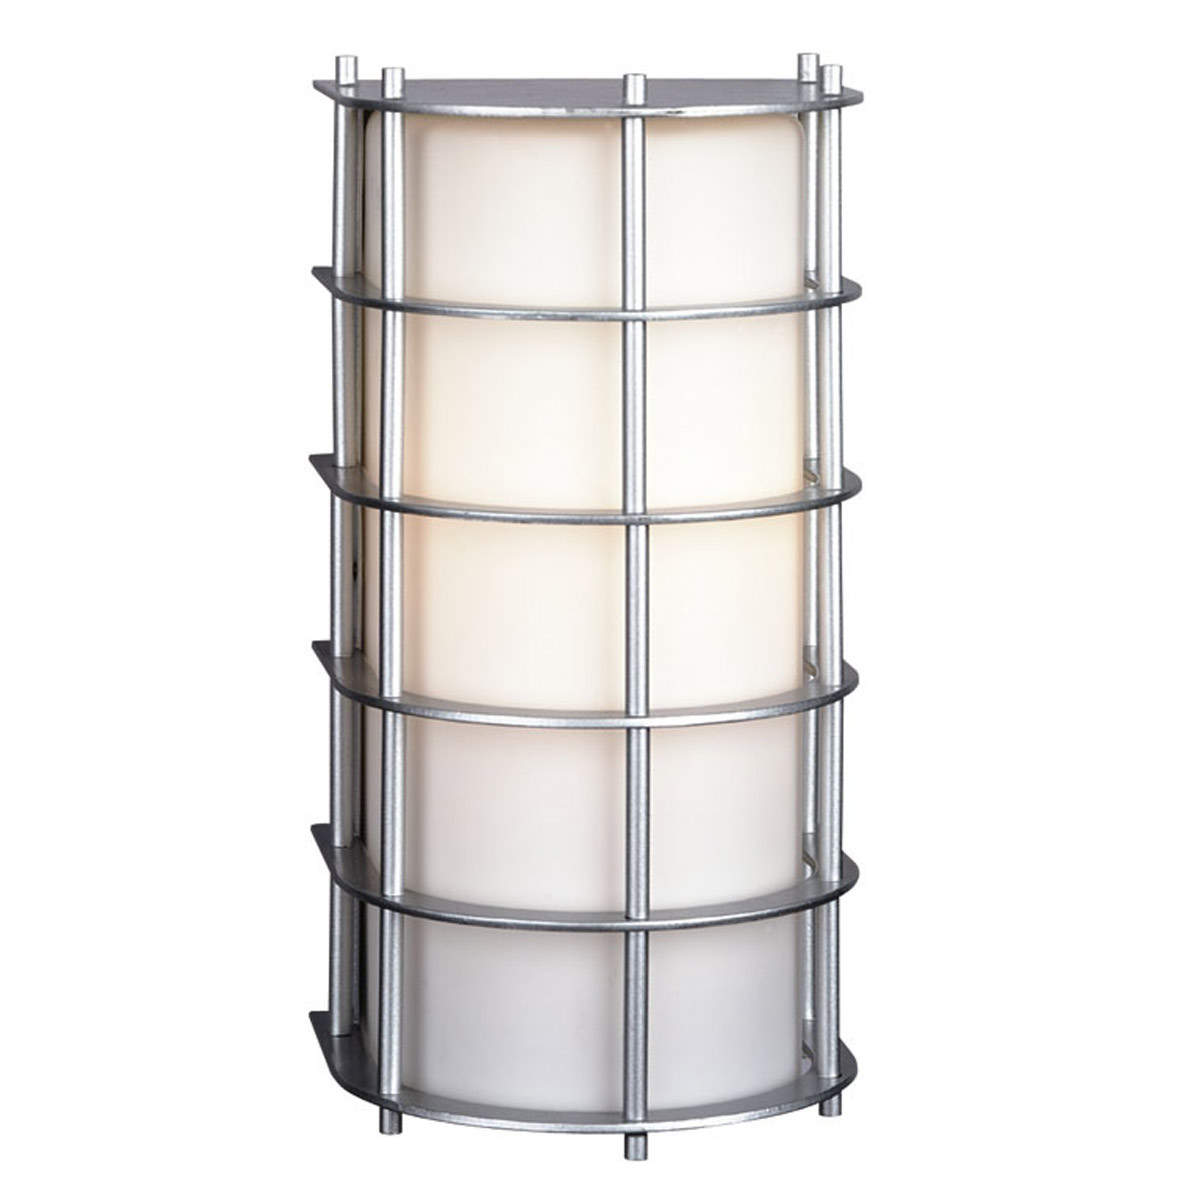 hills outdoor wall sconce by forecast  fnv - hollywood hills outdoor wall sconce by forecast  fnv